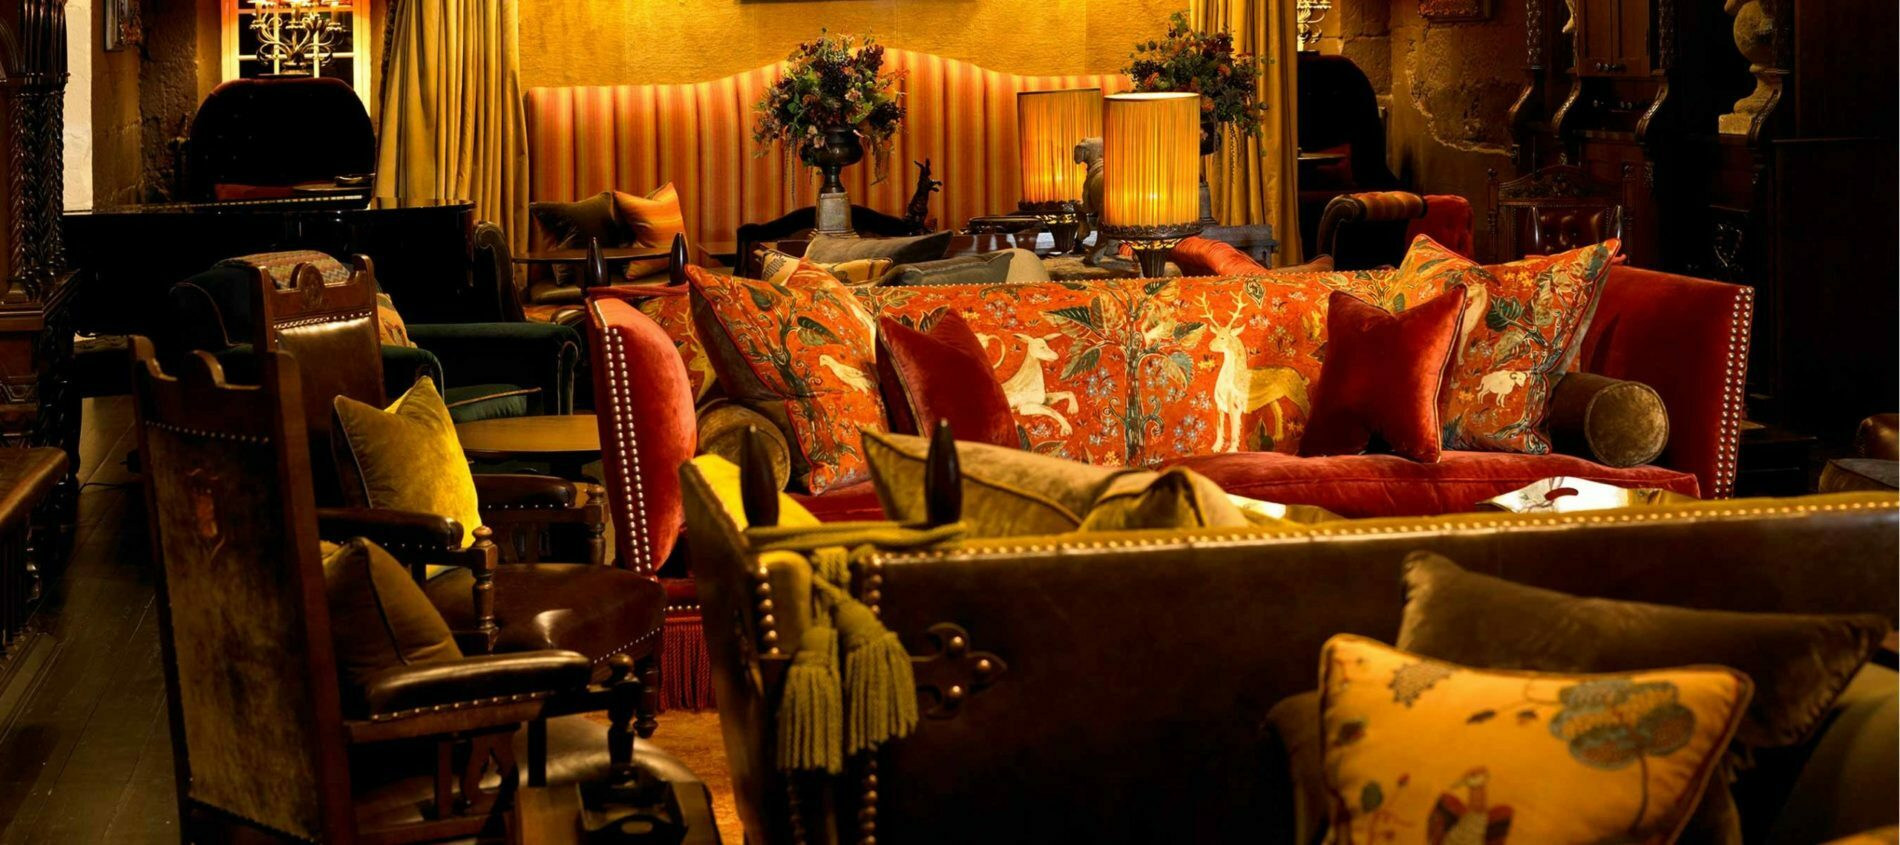 Firelit room with red sofa and other soft furnishings